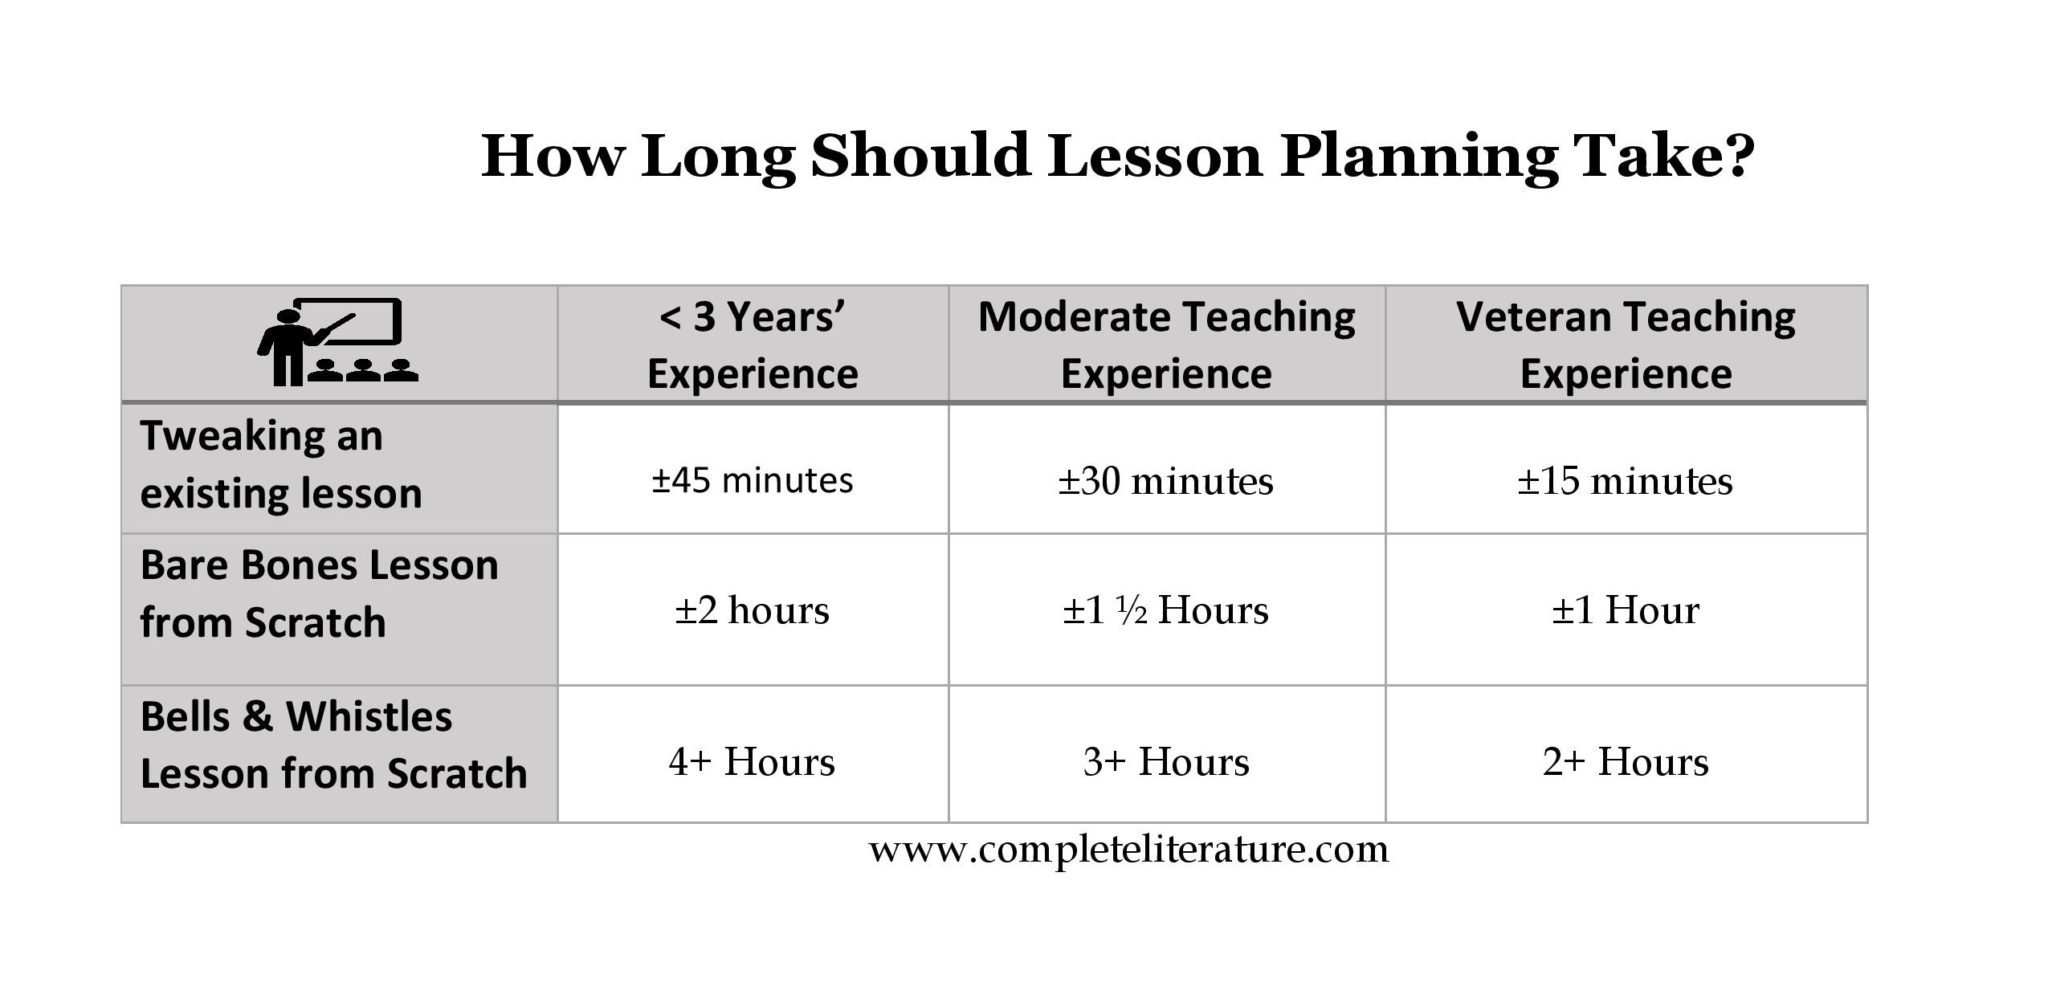 How Long Should Lesson Planning Take?